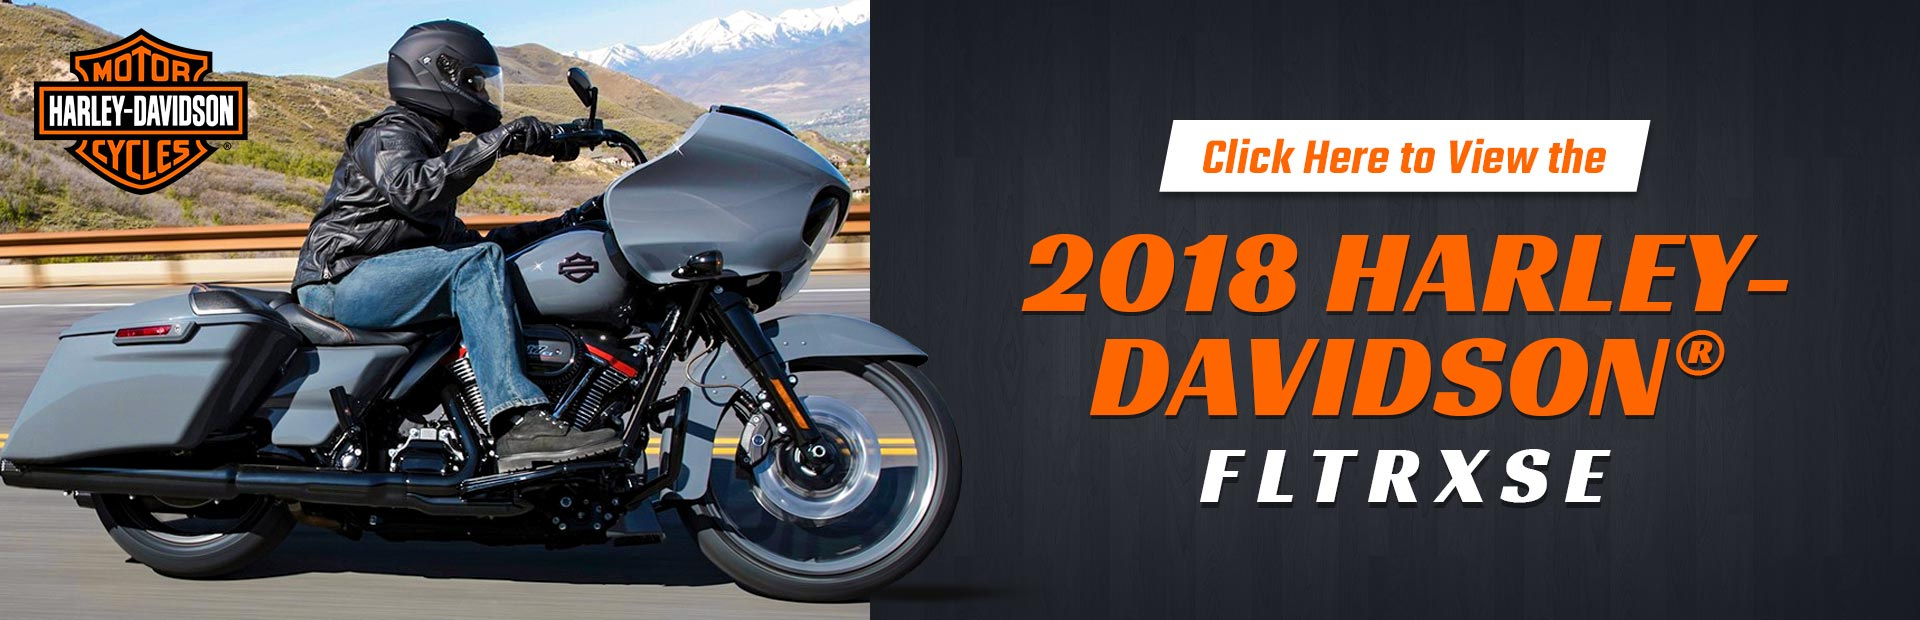 Click here to view the 2018 Harley-Davidson® FLTRXSE.